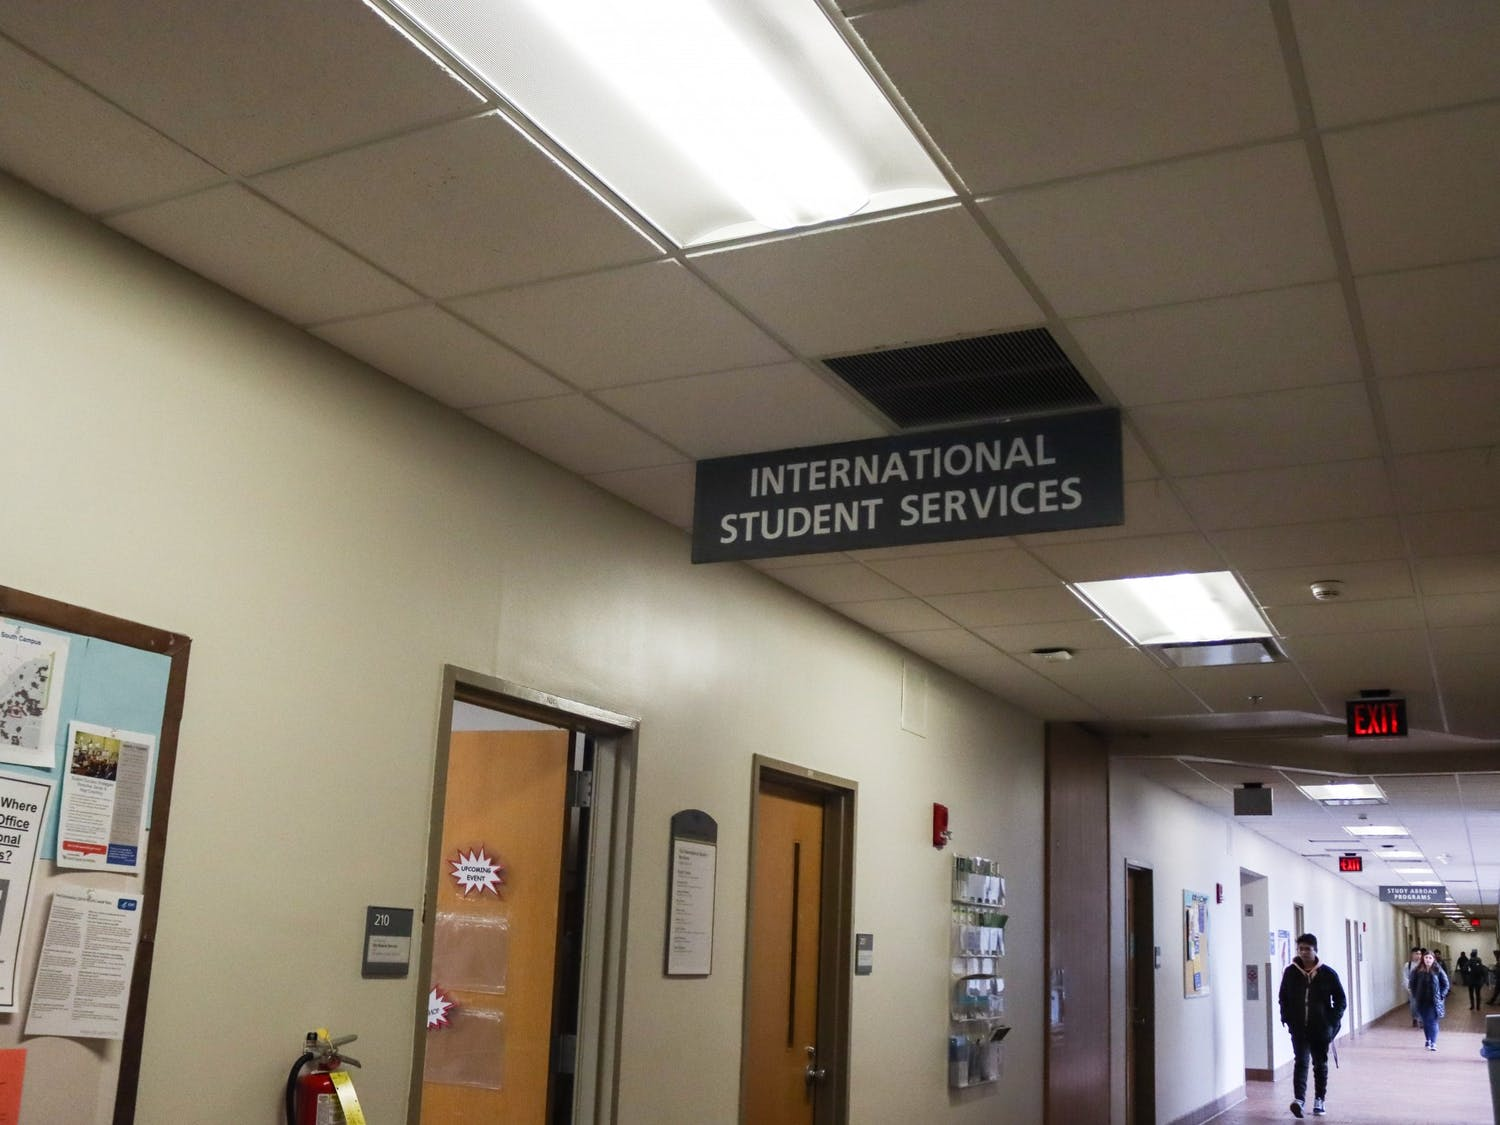 The International Student Services office is located on the second floor of Talbert Hall.